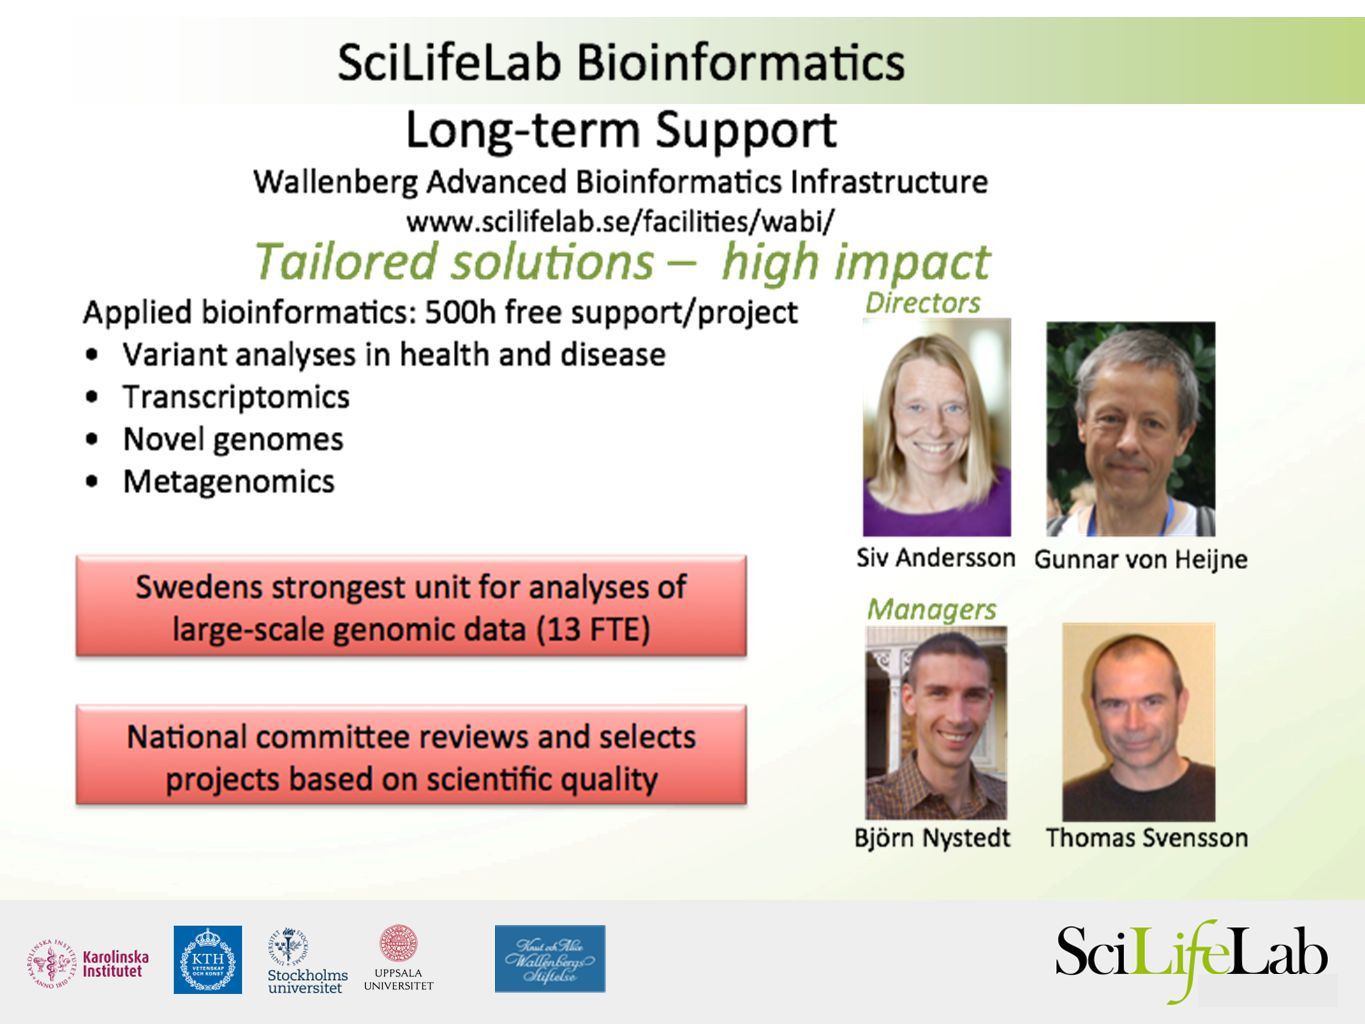 Senior bioinformaticians working in your project 500 h for free.